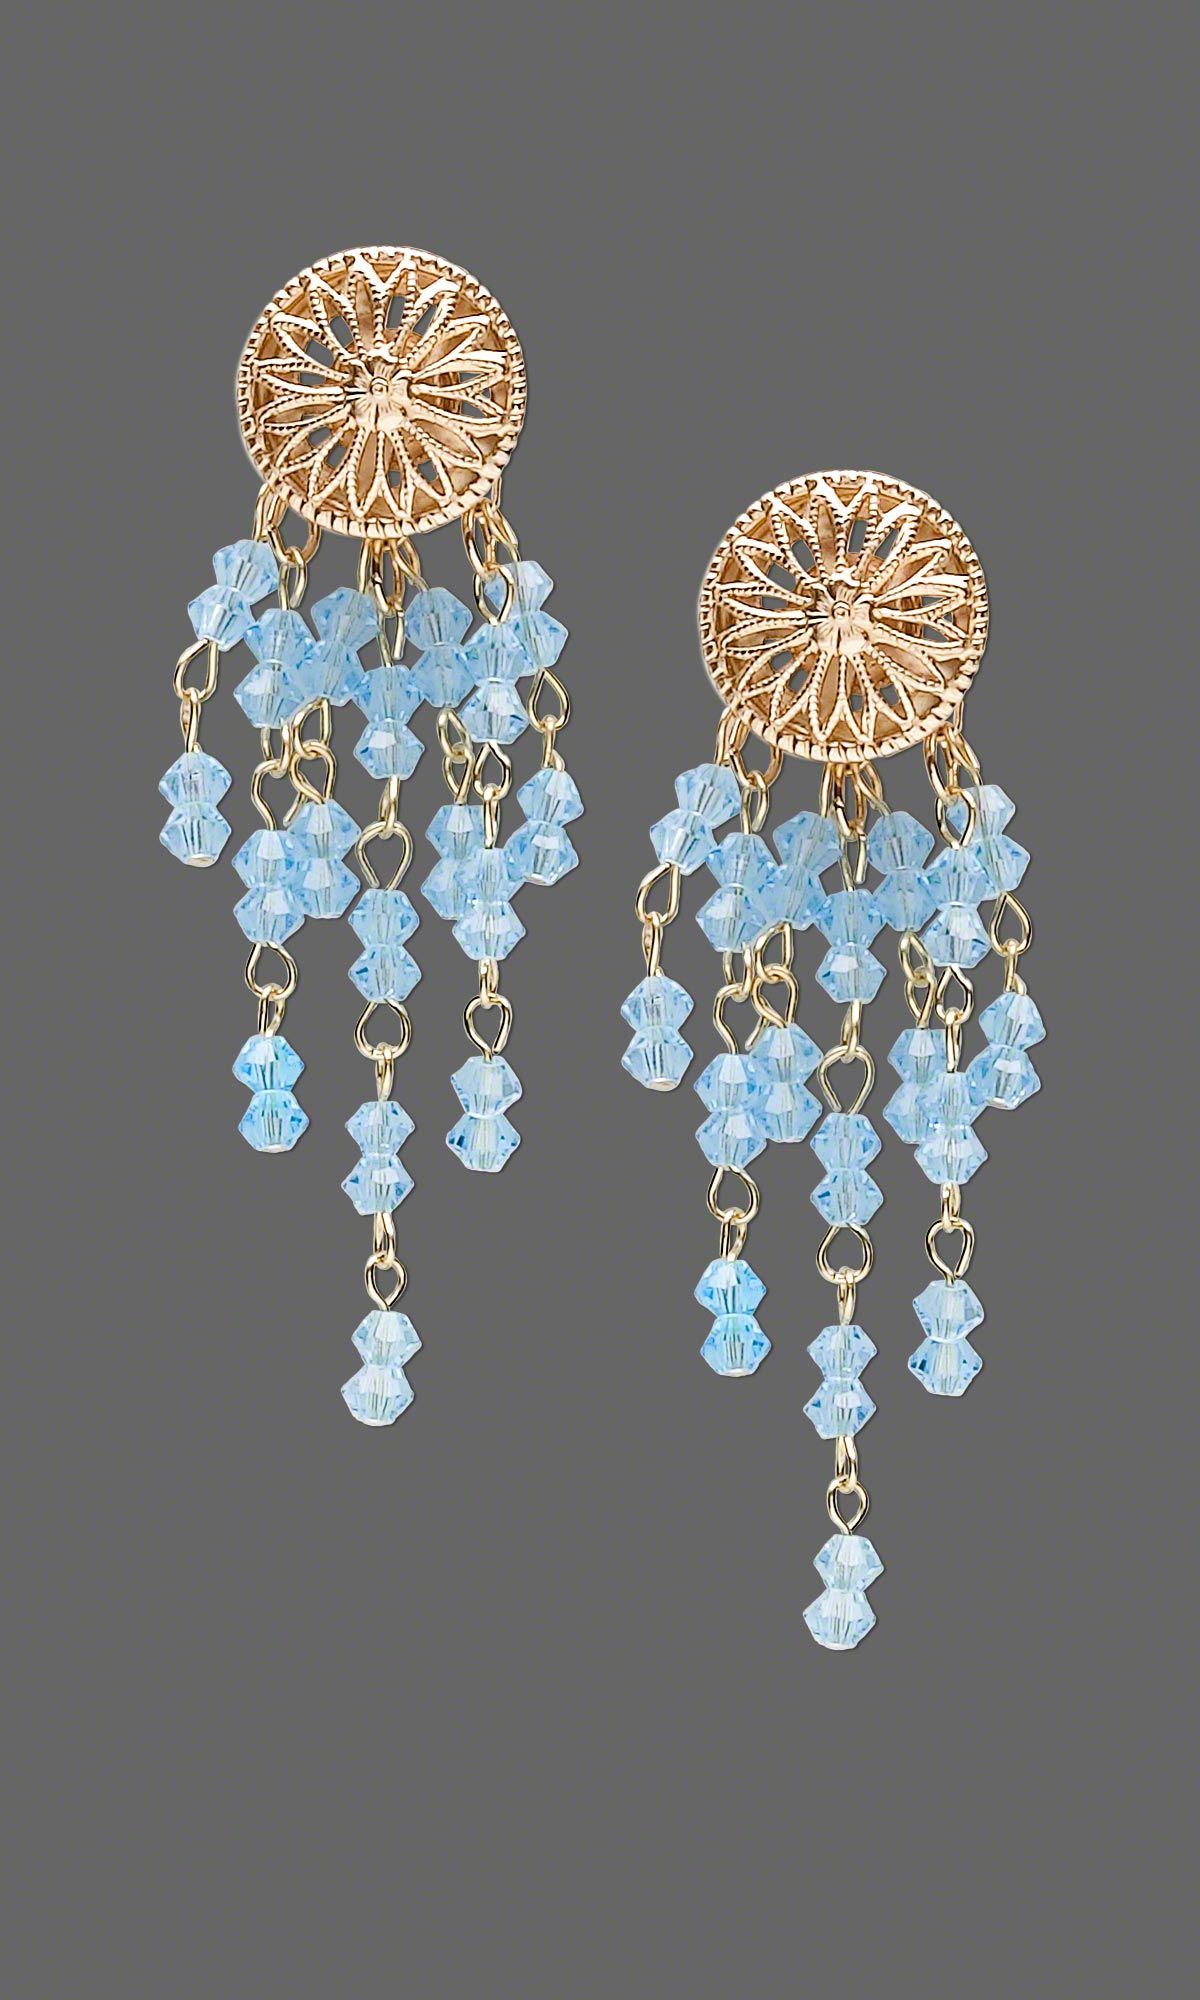 Jewelry Design - Earrings with Swarovski Crystal Beads and Gold Bead Components - Fire Mountain Gems and Beads